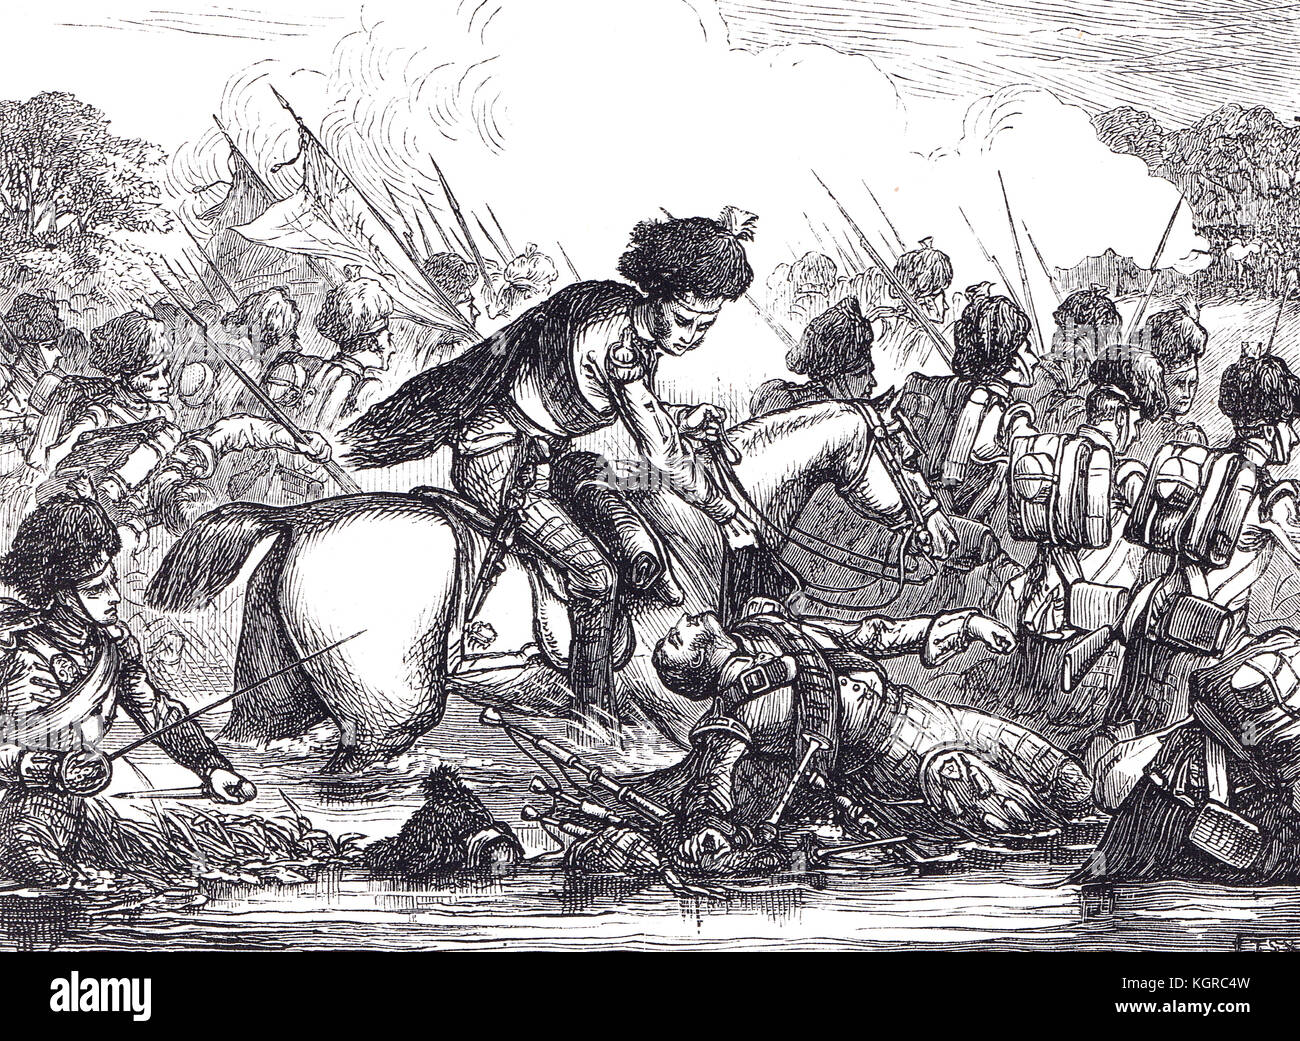 Colonel John Cameron and the Gordon Highlanders, crossing the River at the Battle of the Nive, 9 December 1813 - Stock Image